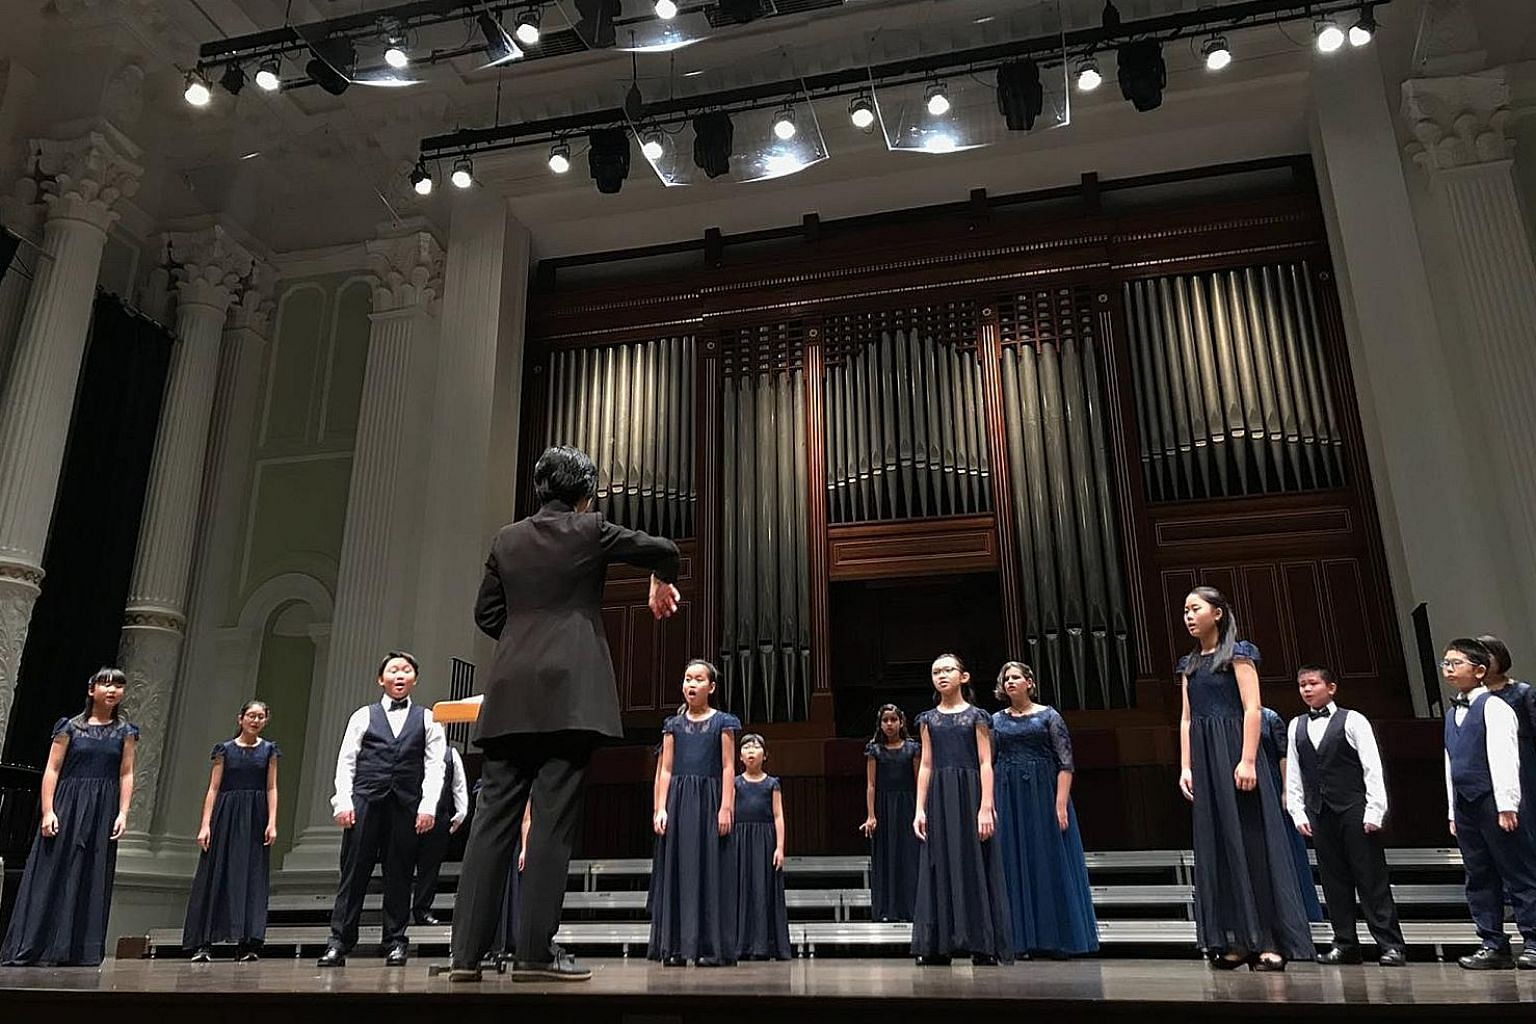 To be held on May 25, the annual concert of the Singapore Lyric Opera Children's Choir (above) is themed How Far I'll Go, after the hit song from the 2016 Disney animated film Moana.